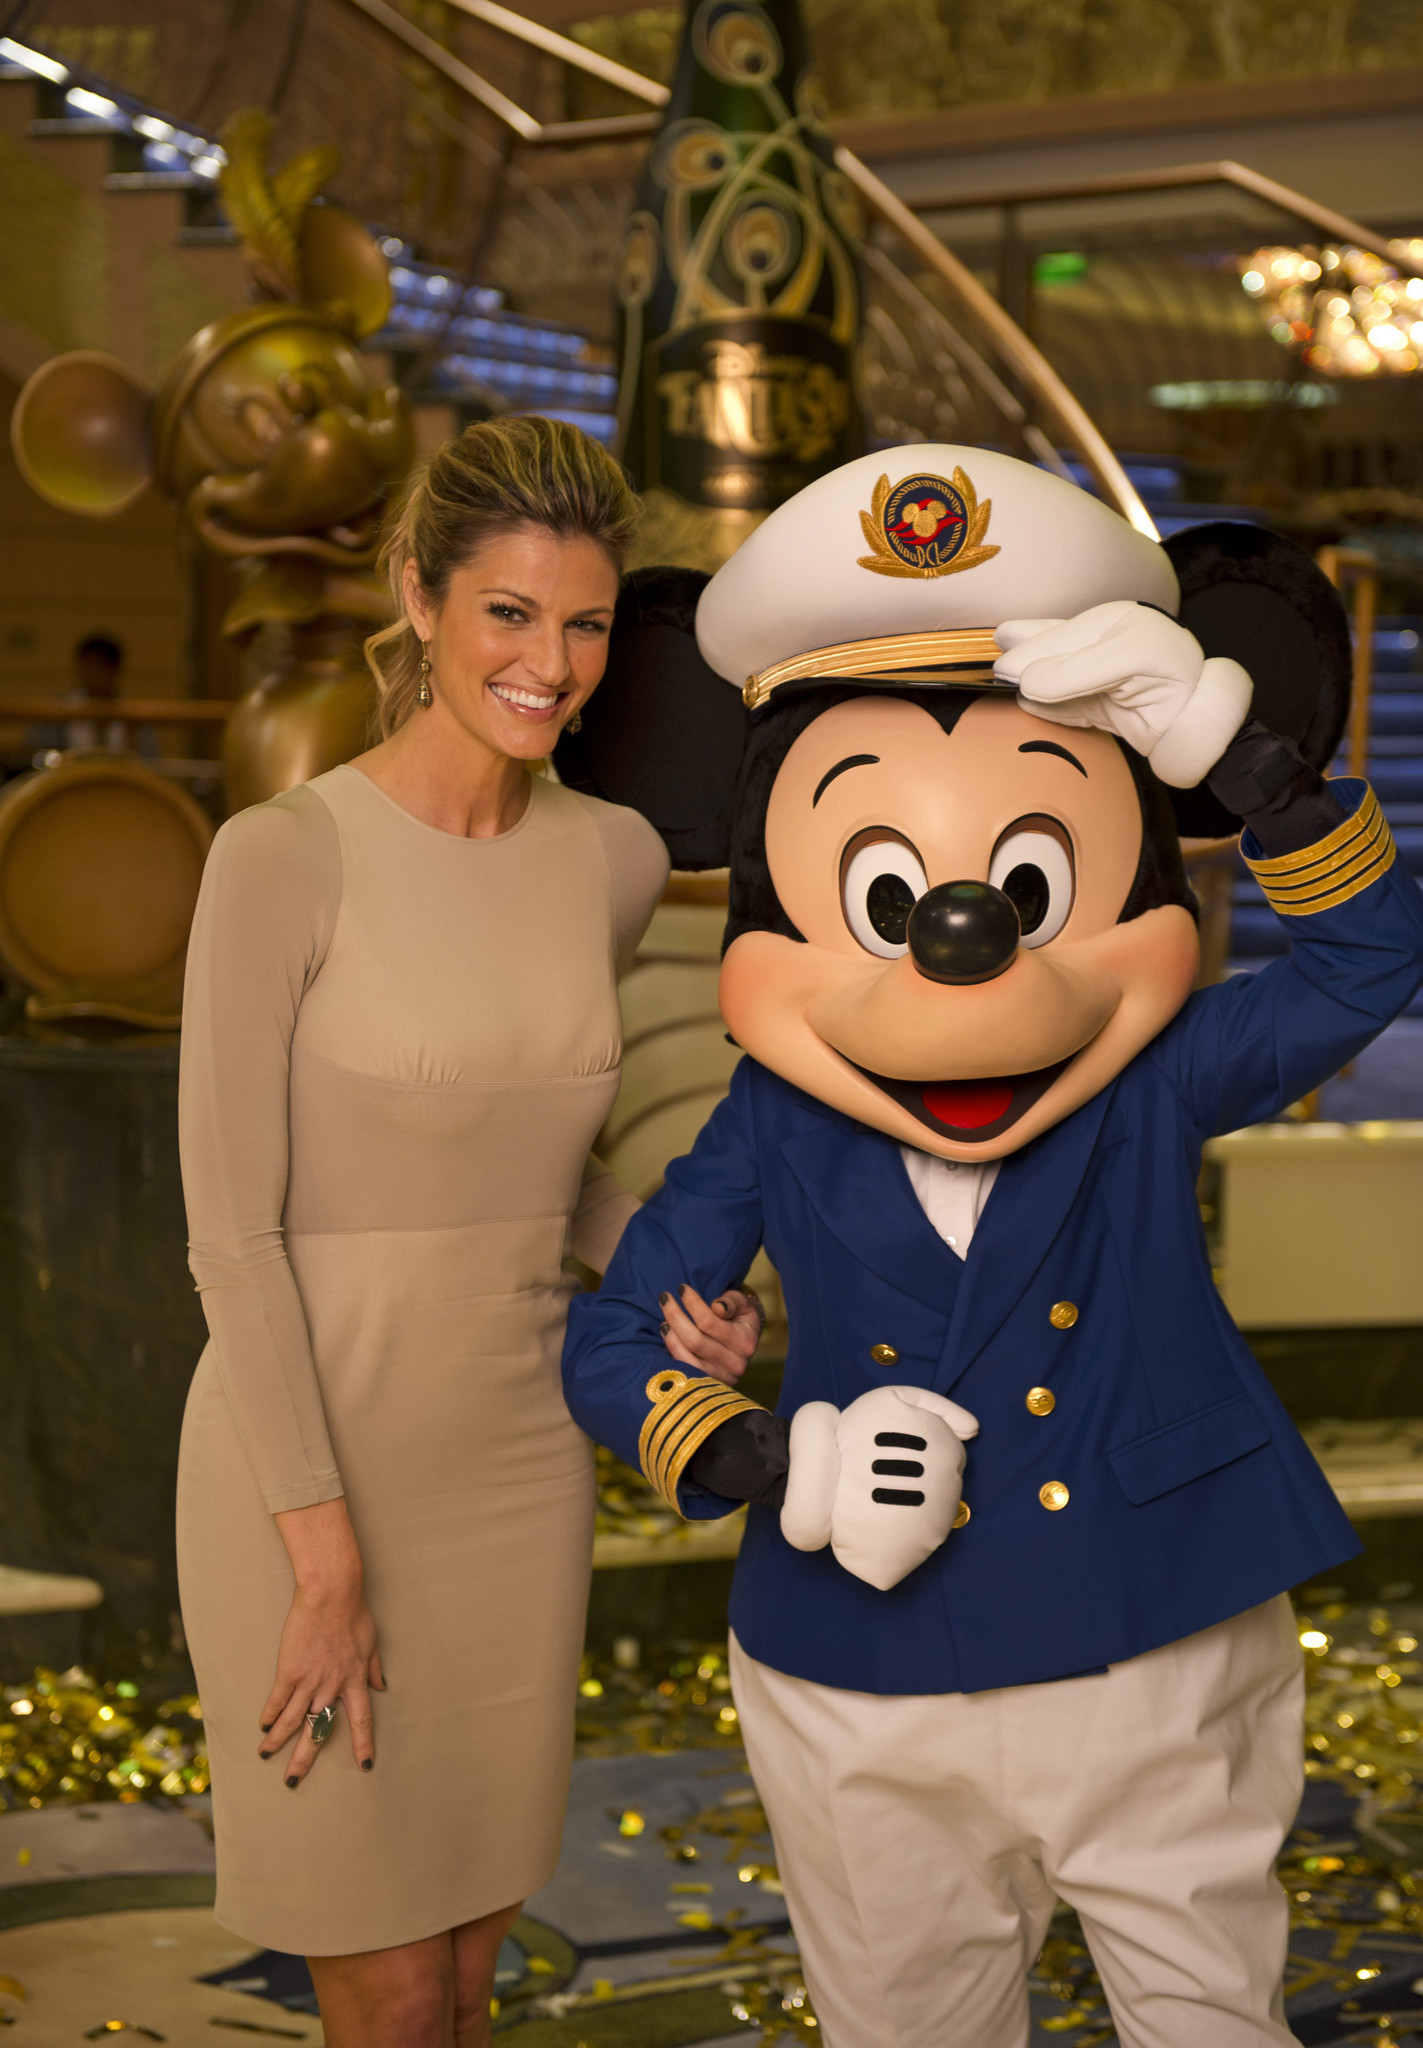 Florida Cruise Guide: Disney Fantasy pictures - Disney Fantasy christening -- Erin Andrews